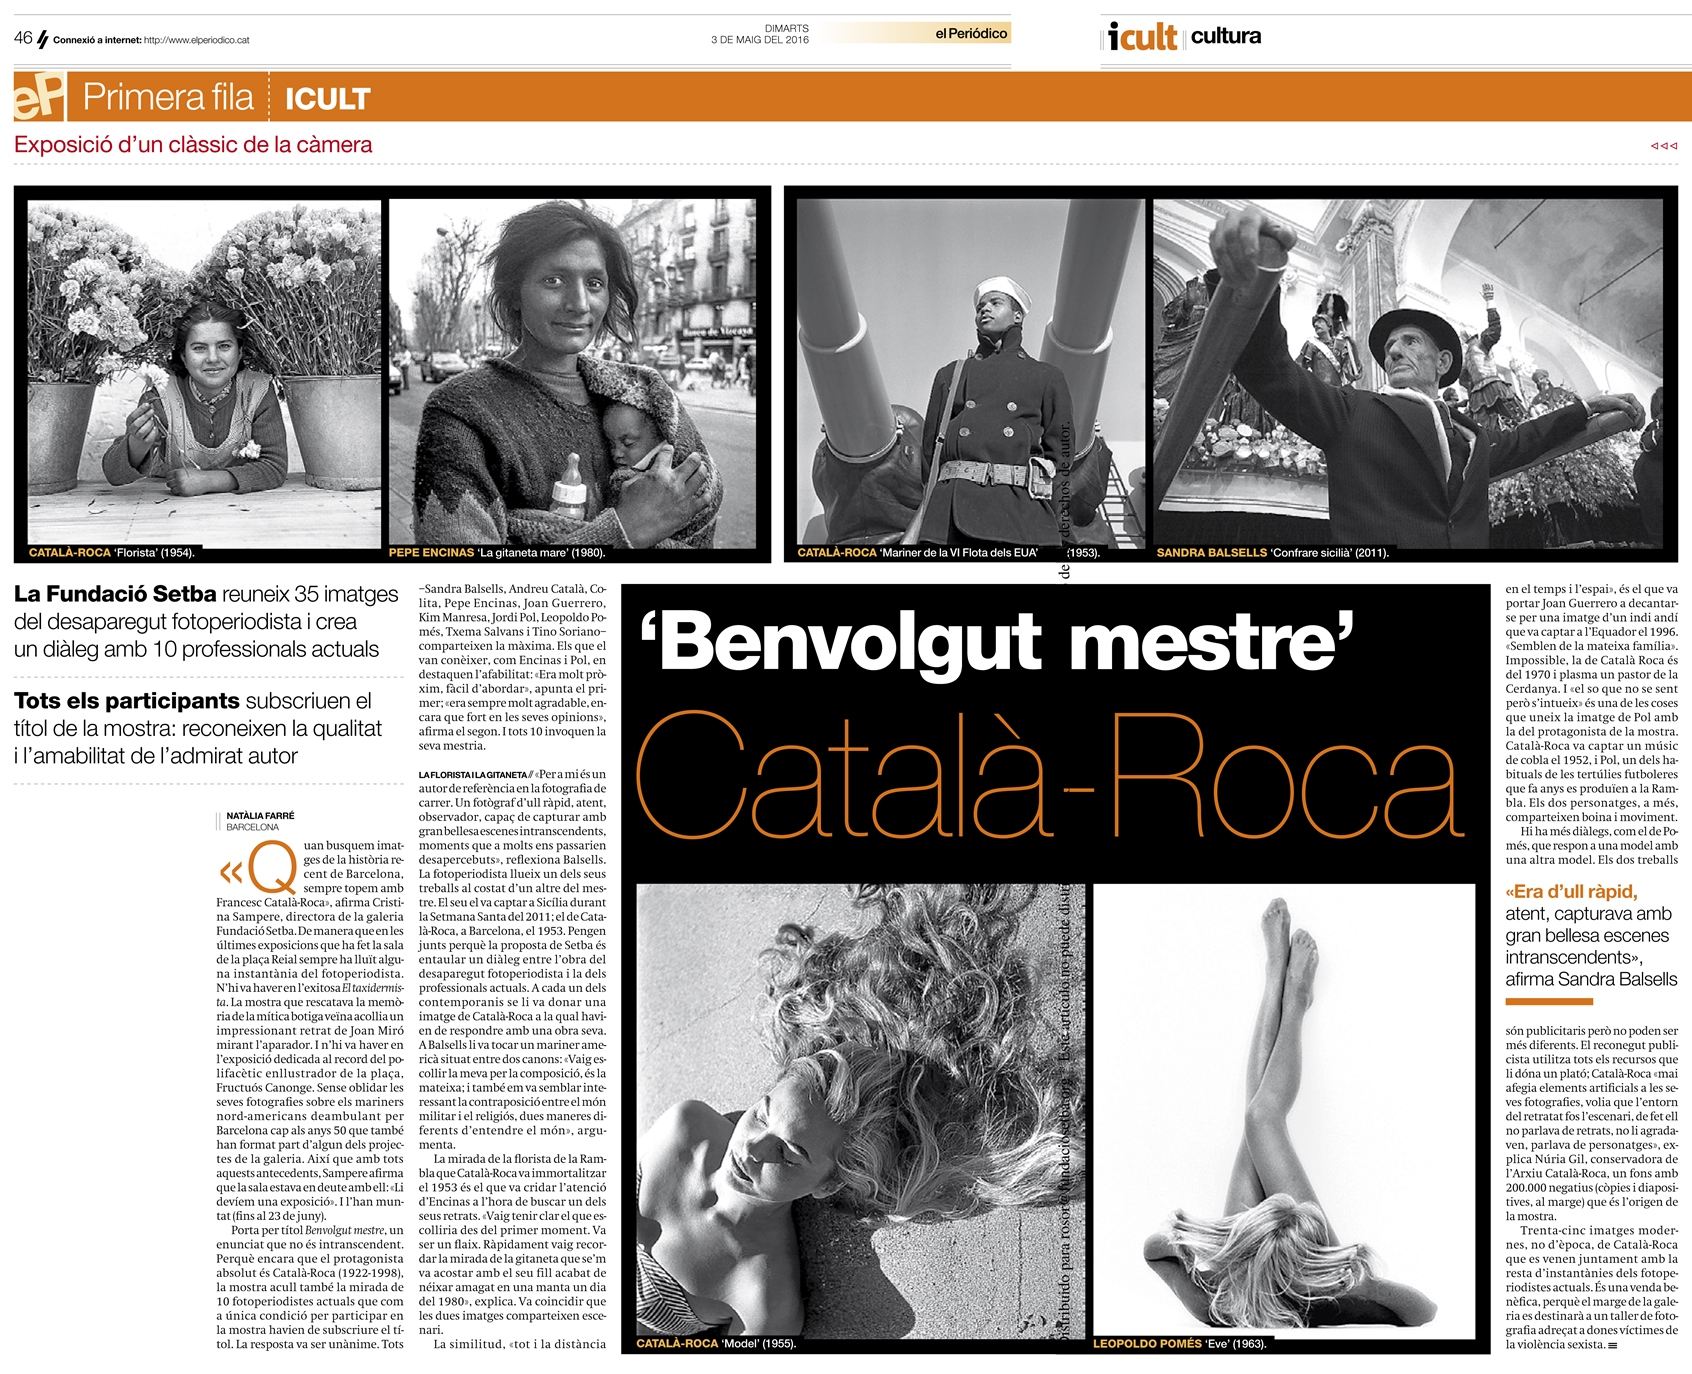 20160503-nwp1-elperiodico-cat-cataluna_a3 (CAT)